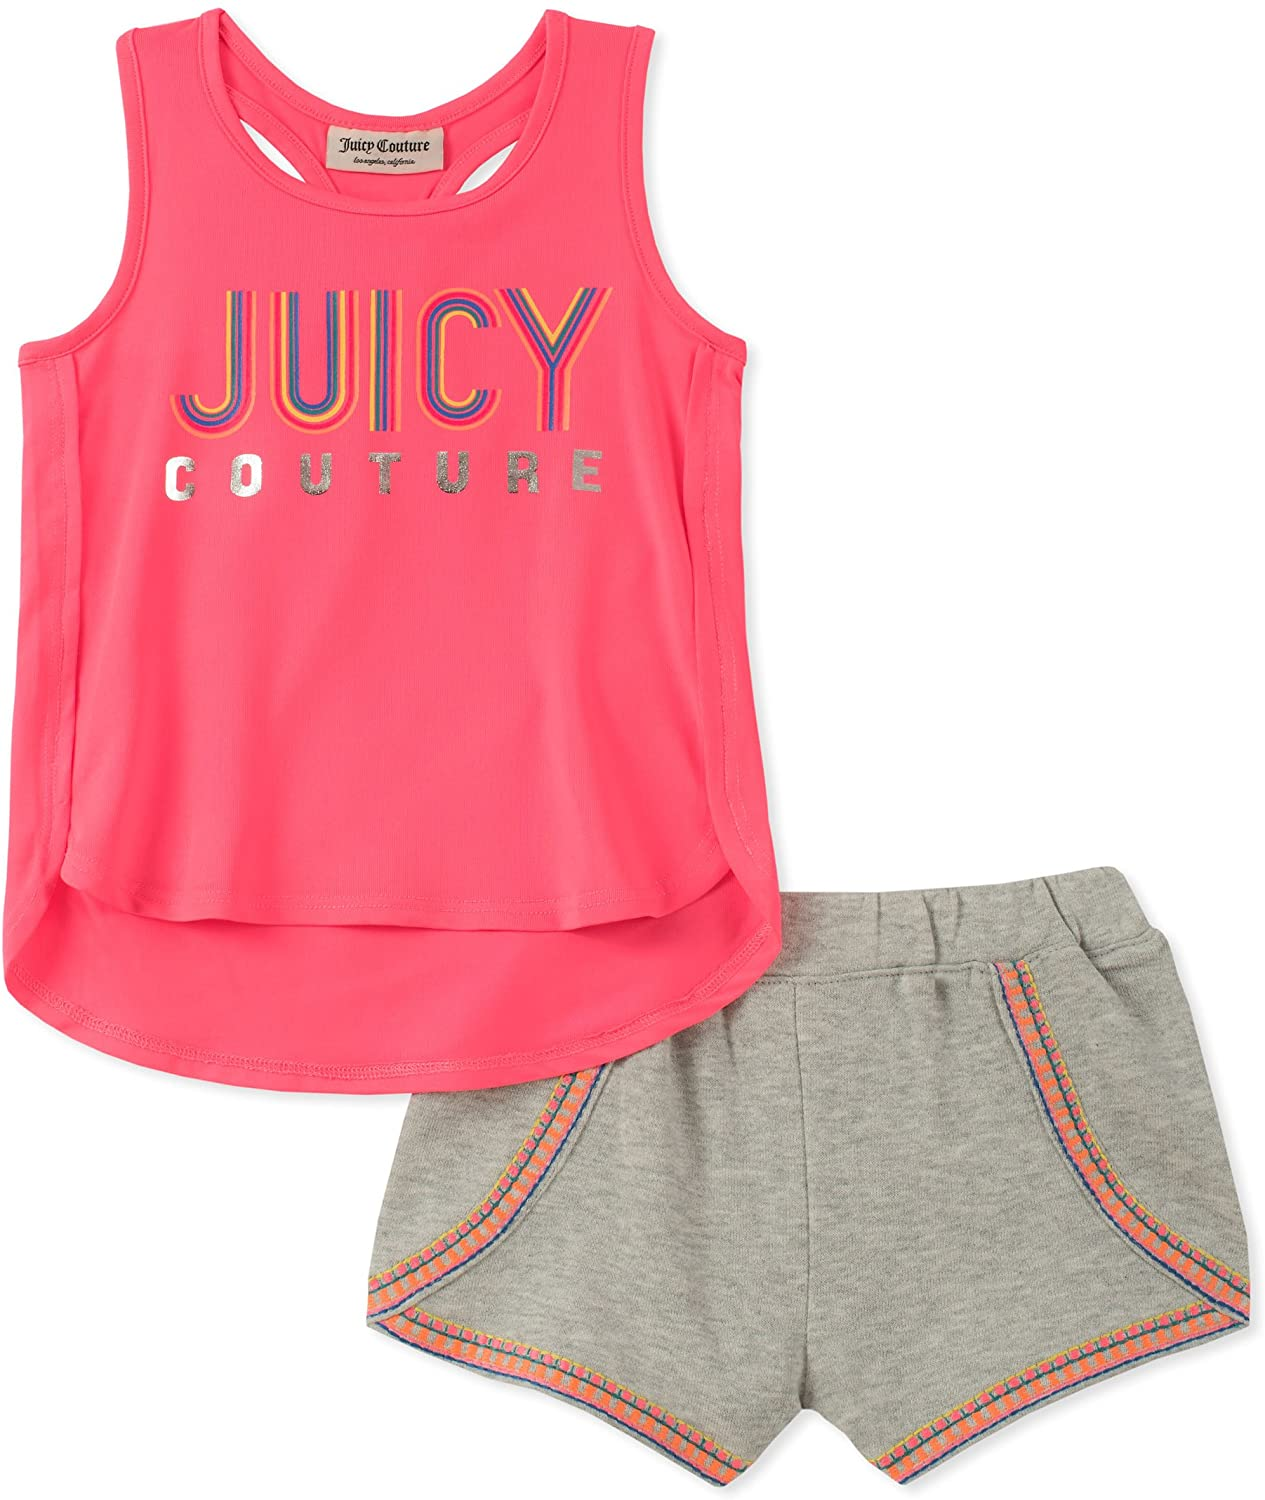 Juicy Couture Baby Girls 2 Pieces Shorts Set